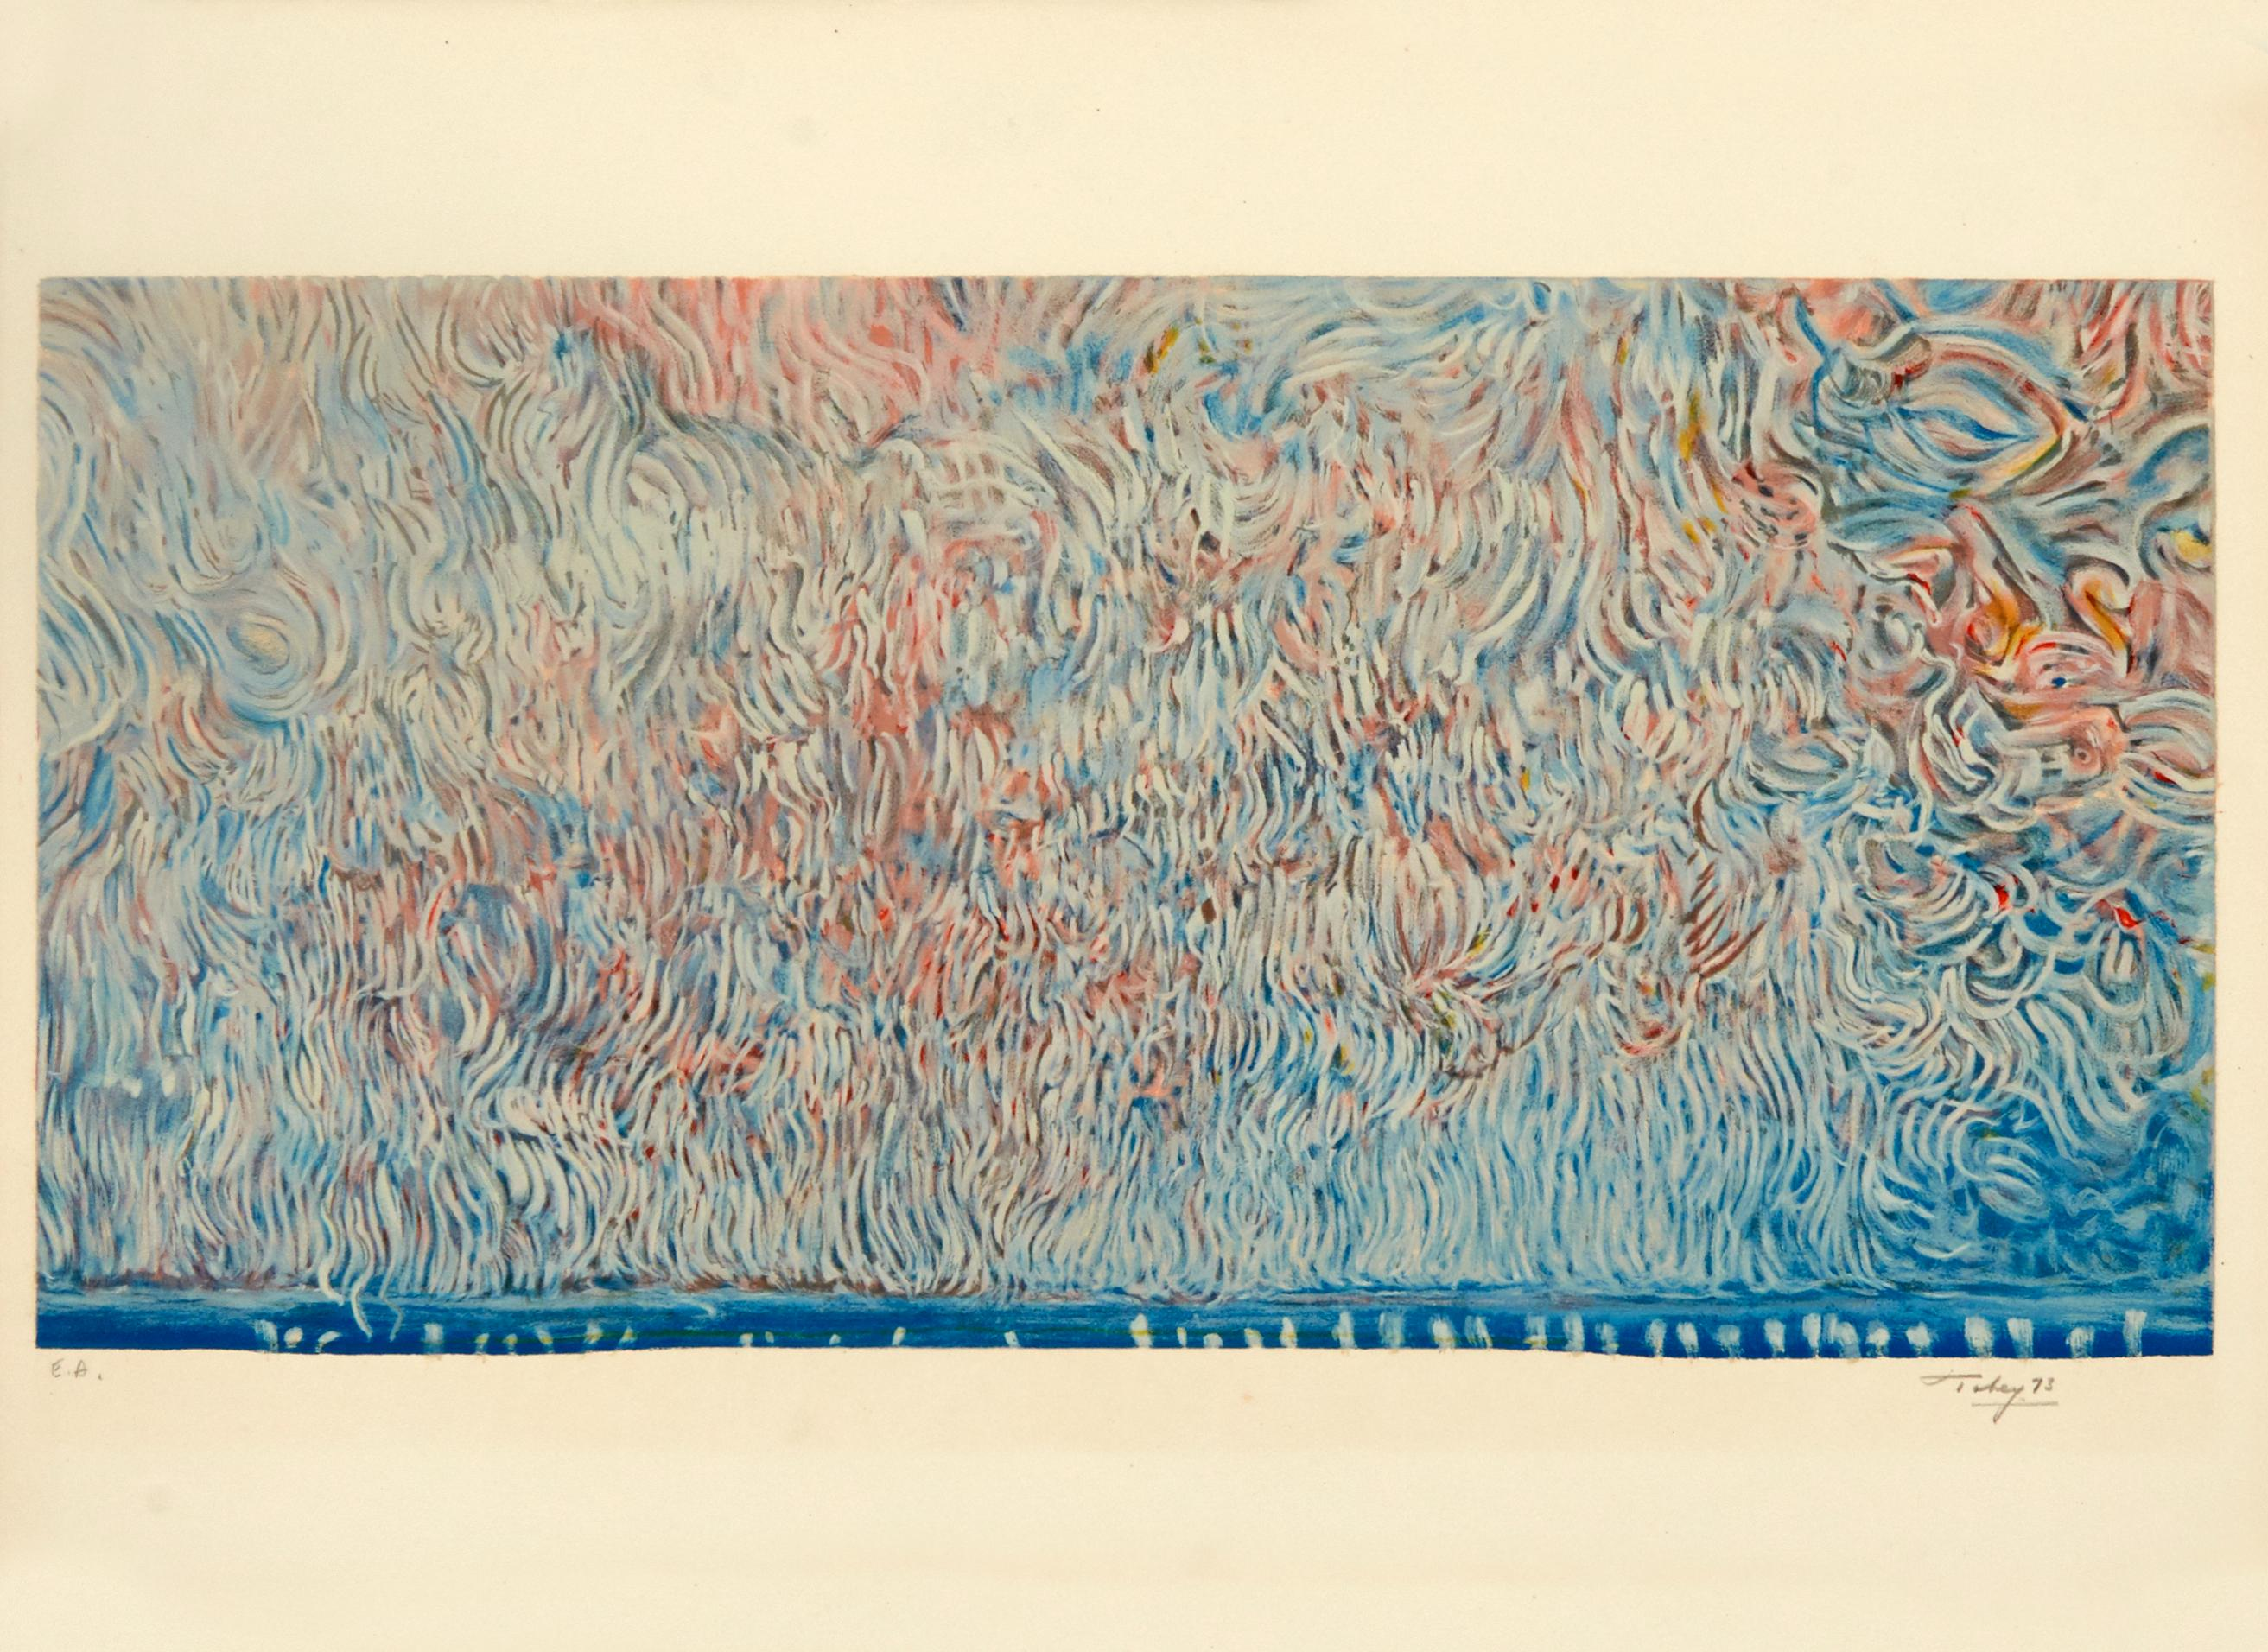 The Scroll of Liberty by Mark Tobey - color signed lithograph